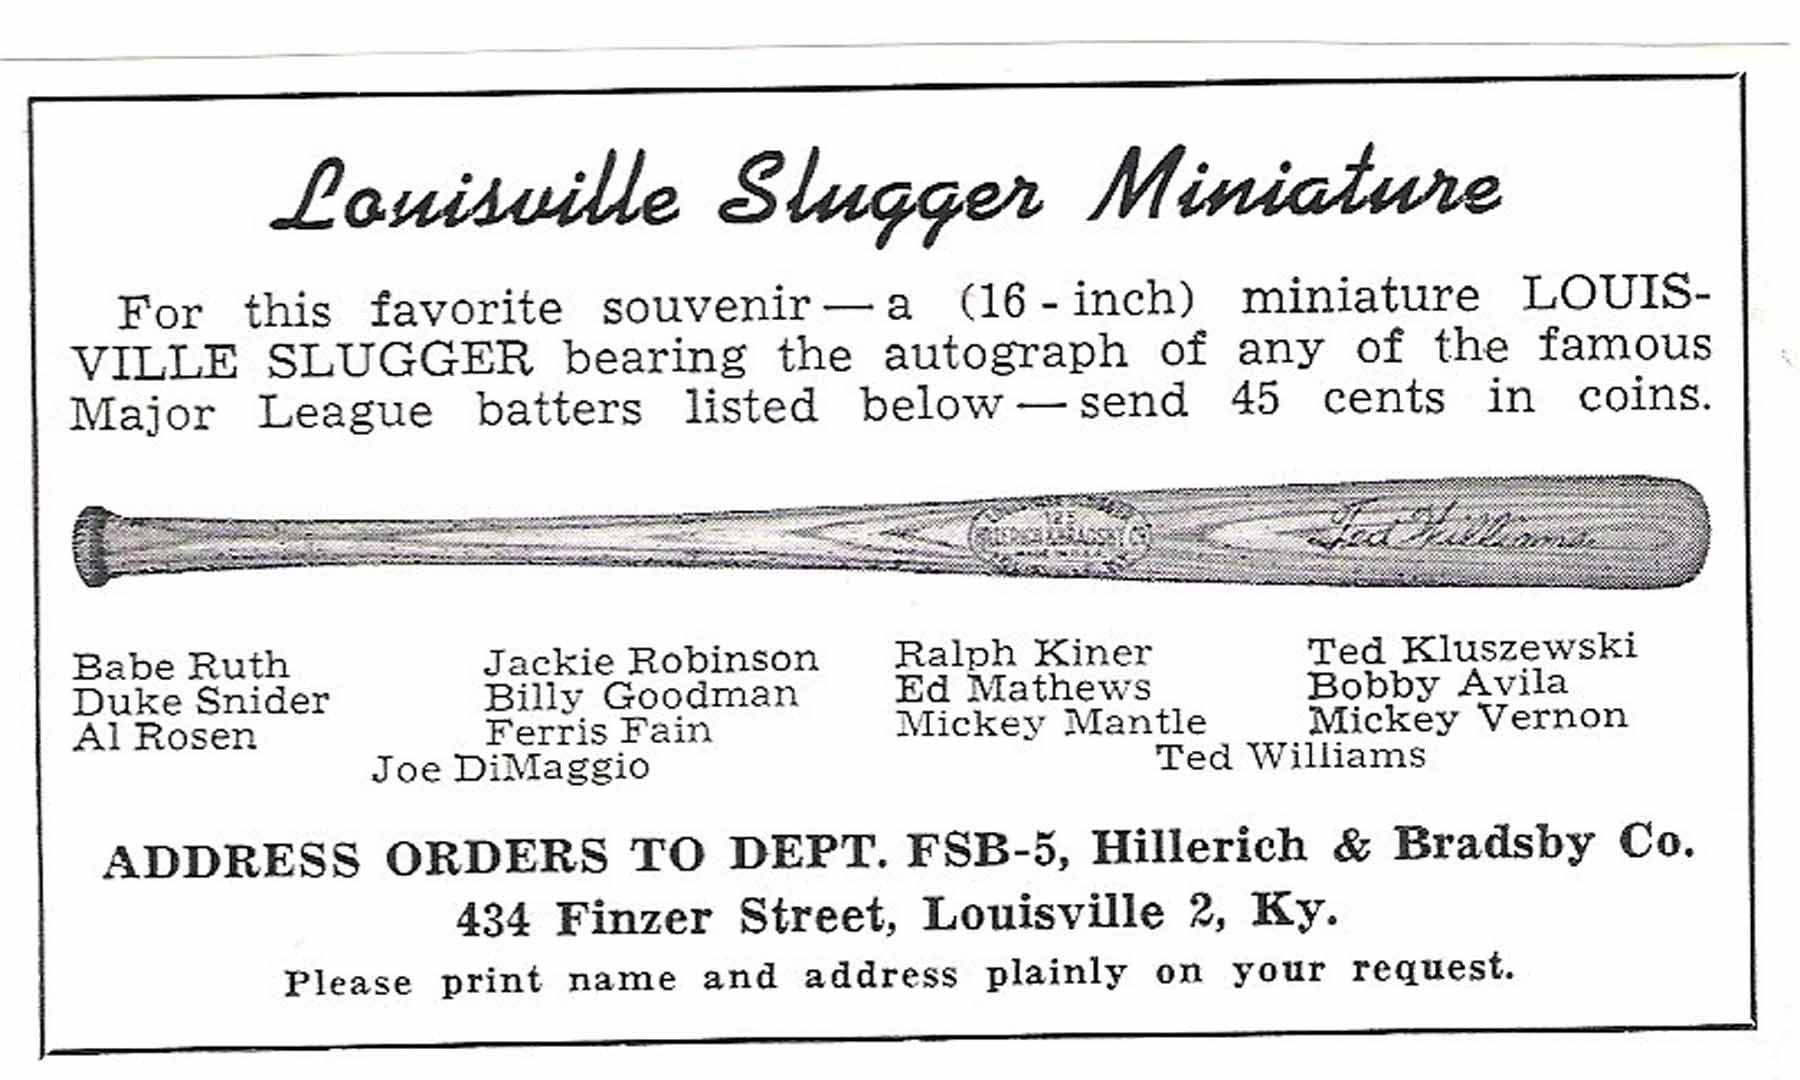 1955-h-and-b-famous-sluggers